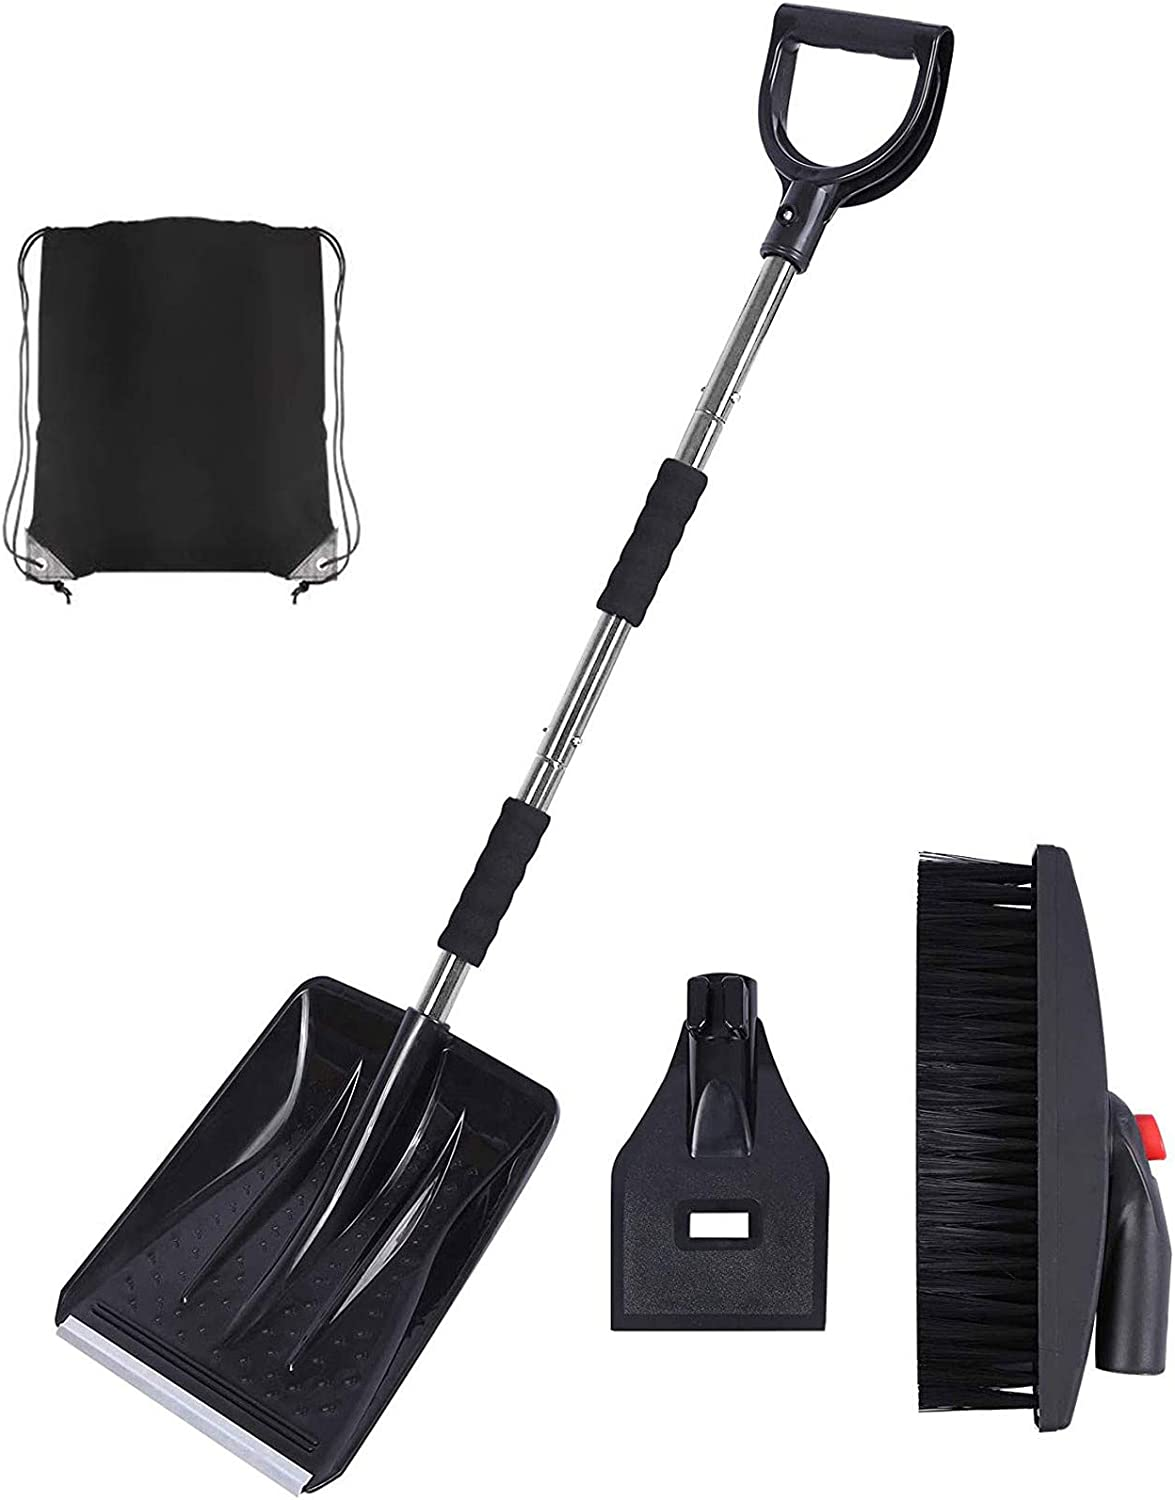 Award 3-in-1 Snow Removal Kit Detachable Sn Popular shop is the lowest price challenge Multifunctional Portable